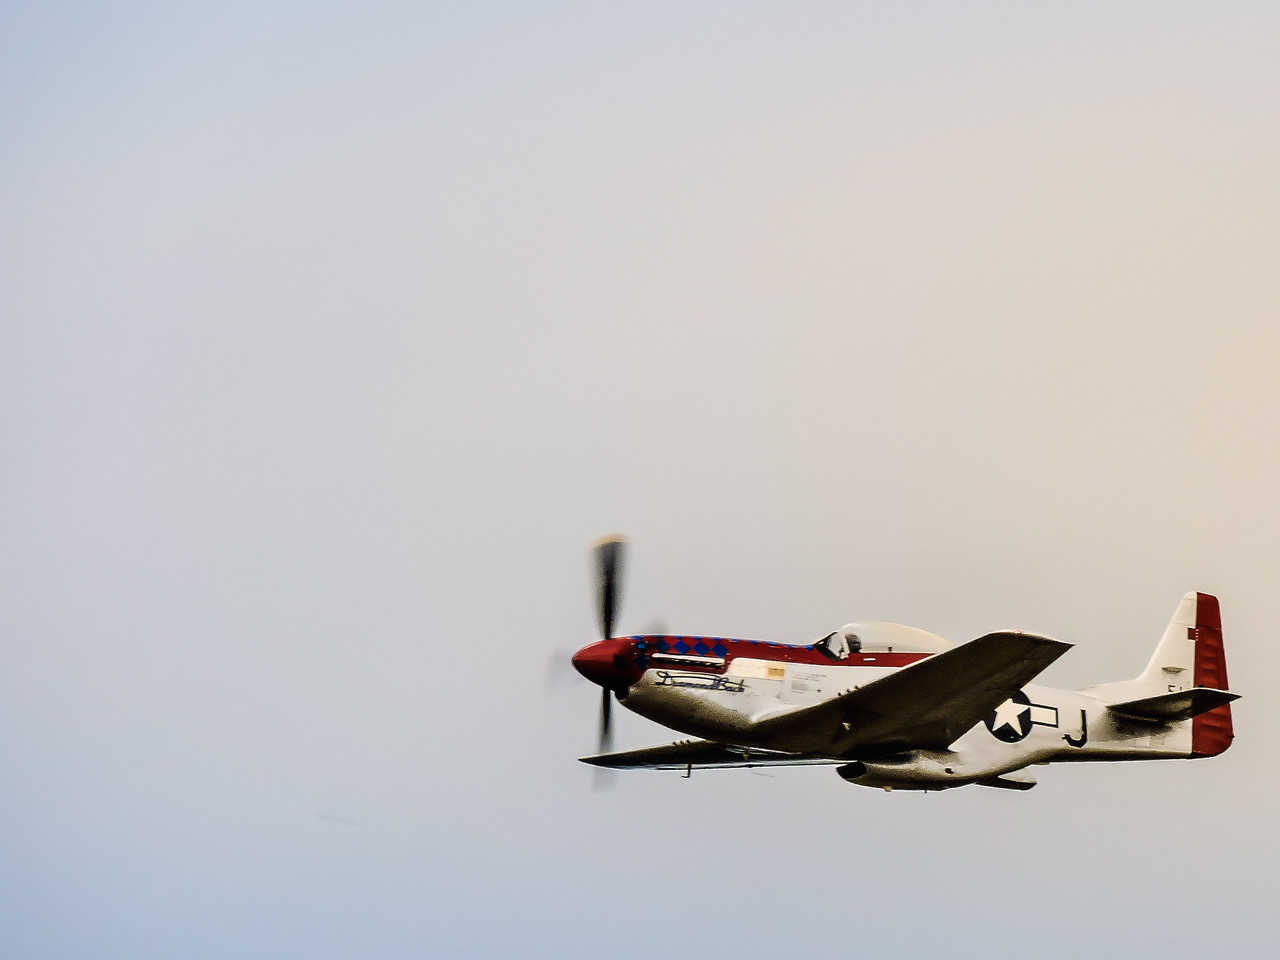 Planes-Tony Porter Photography-2-6